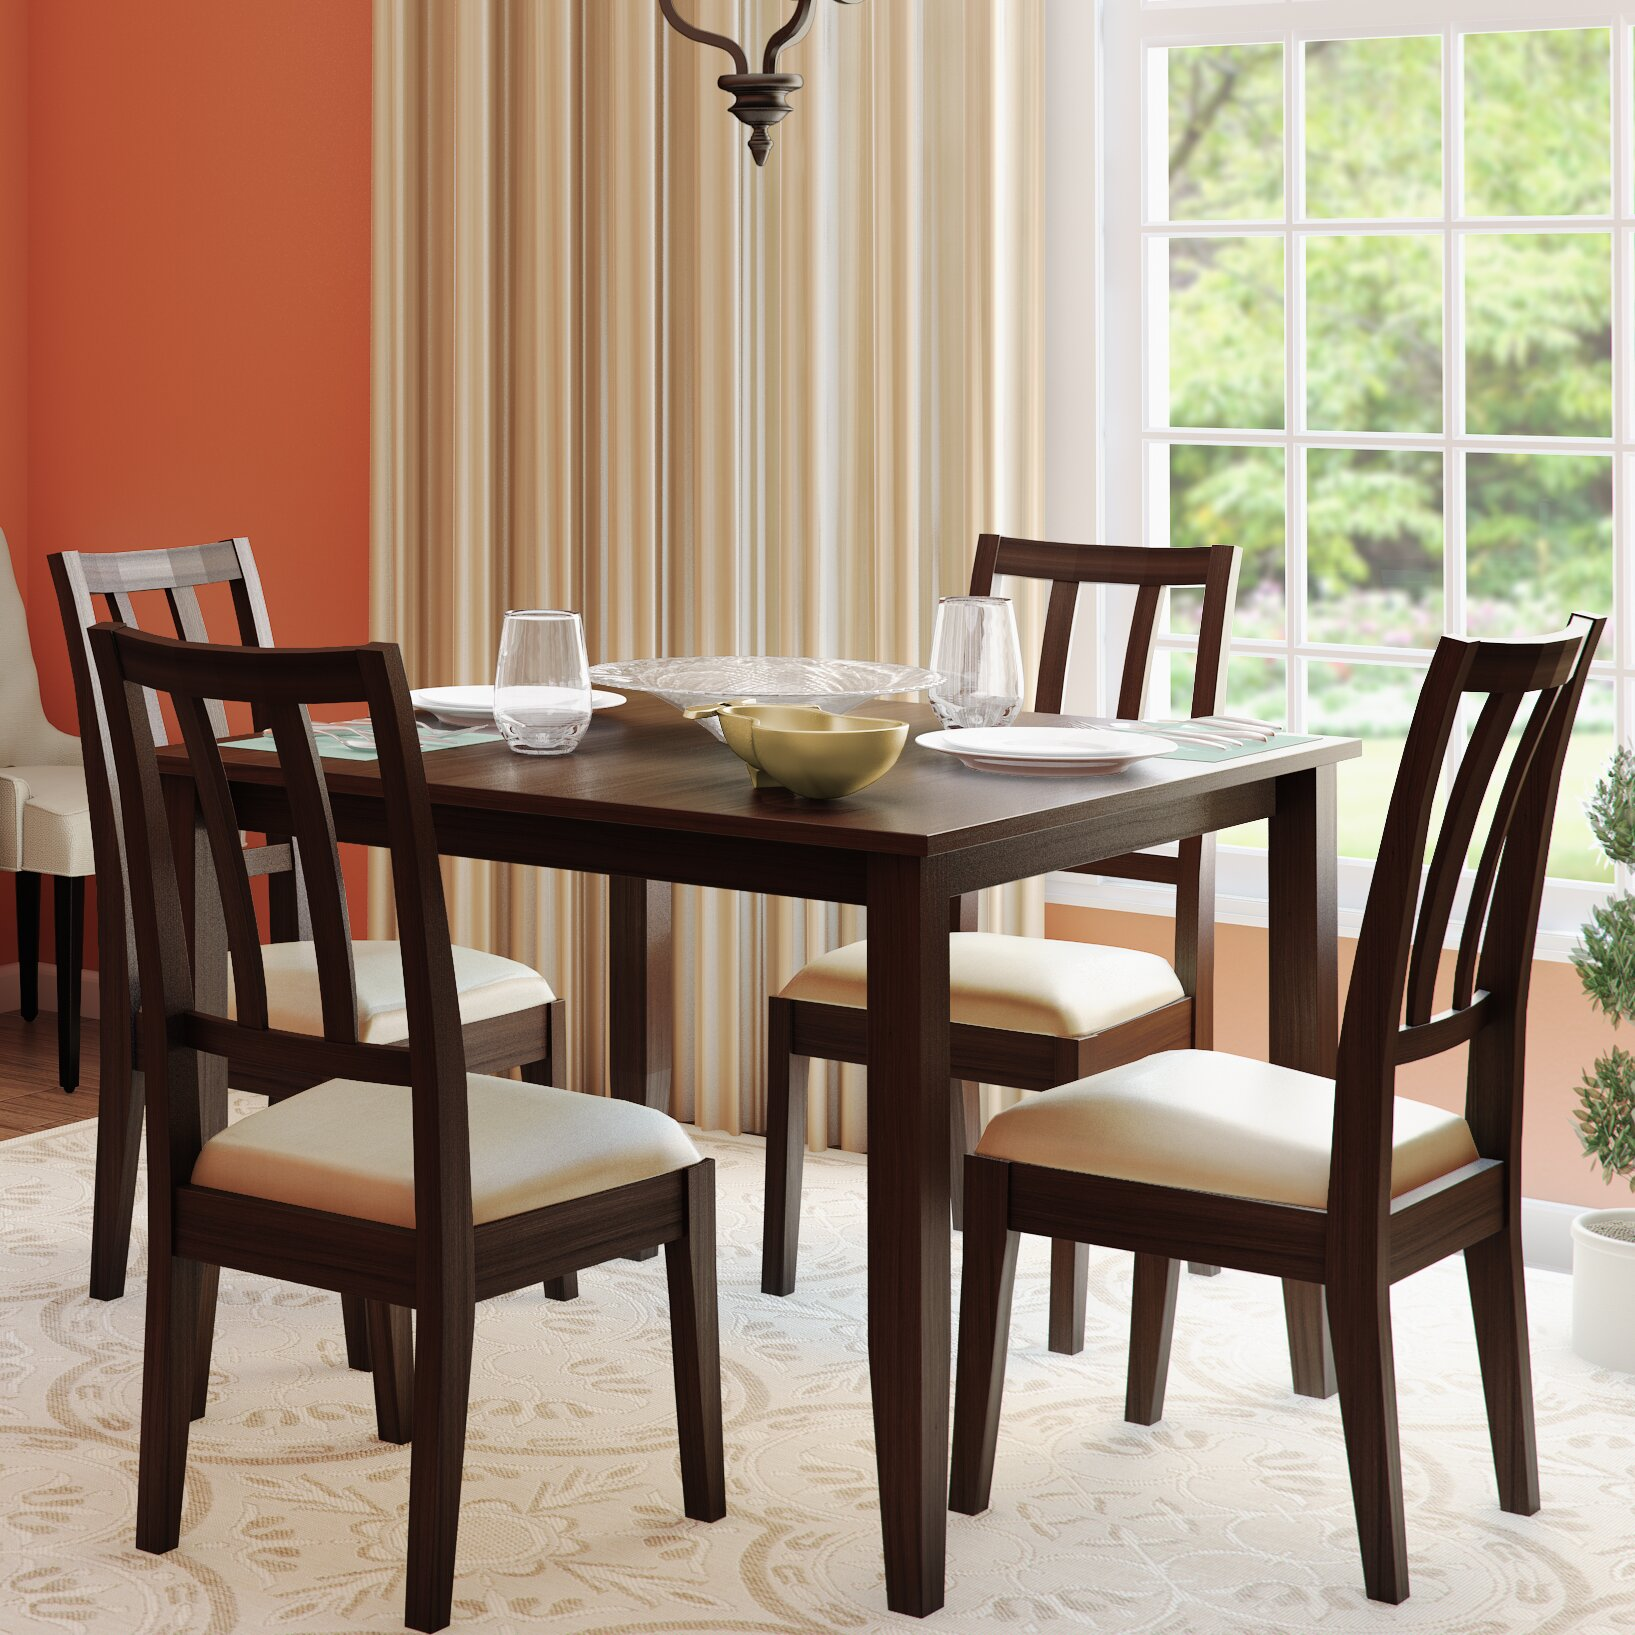 Alcott hill primrose road 5 piece dining set reviews for 5 piece dining set